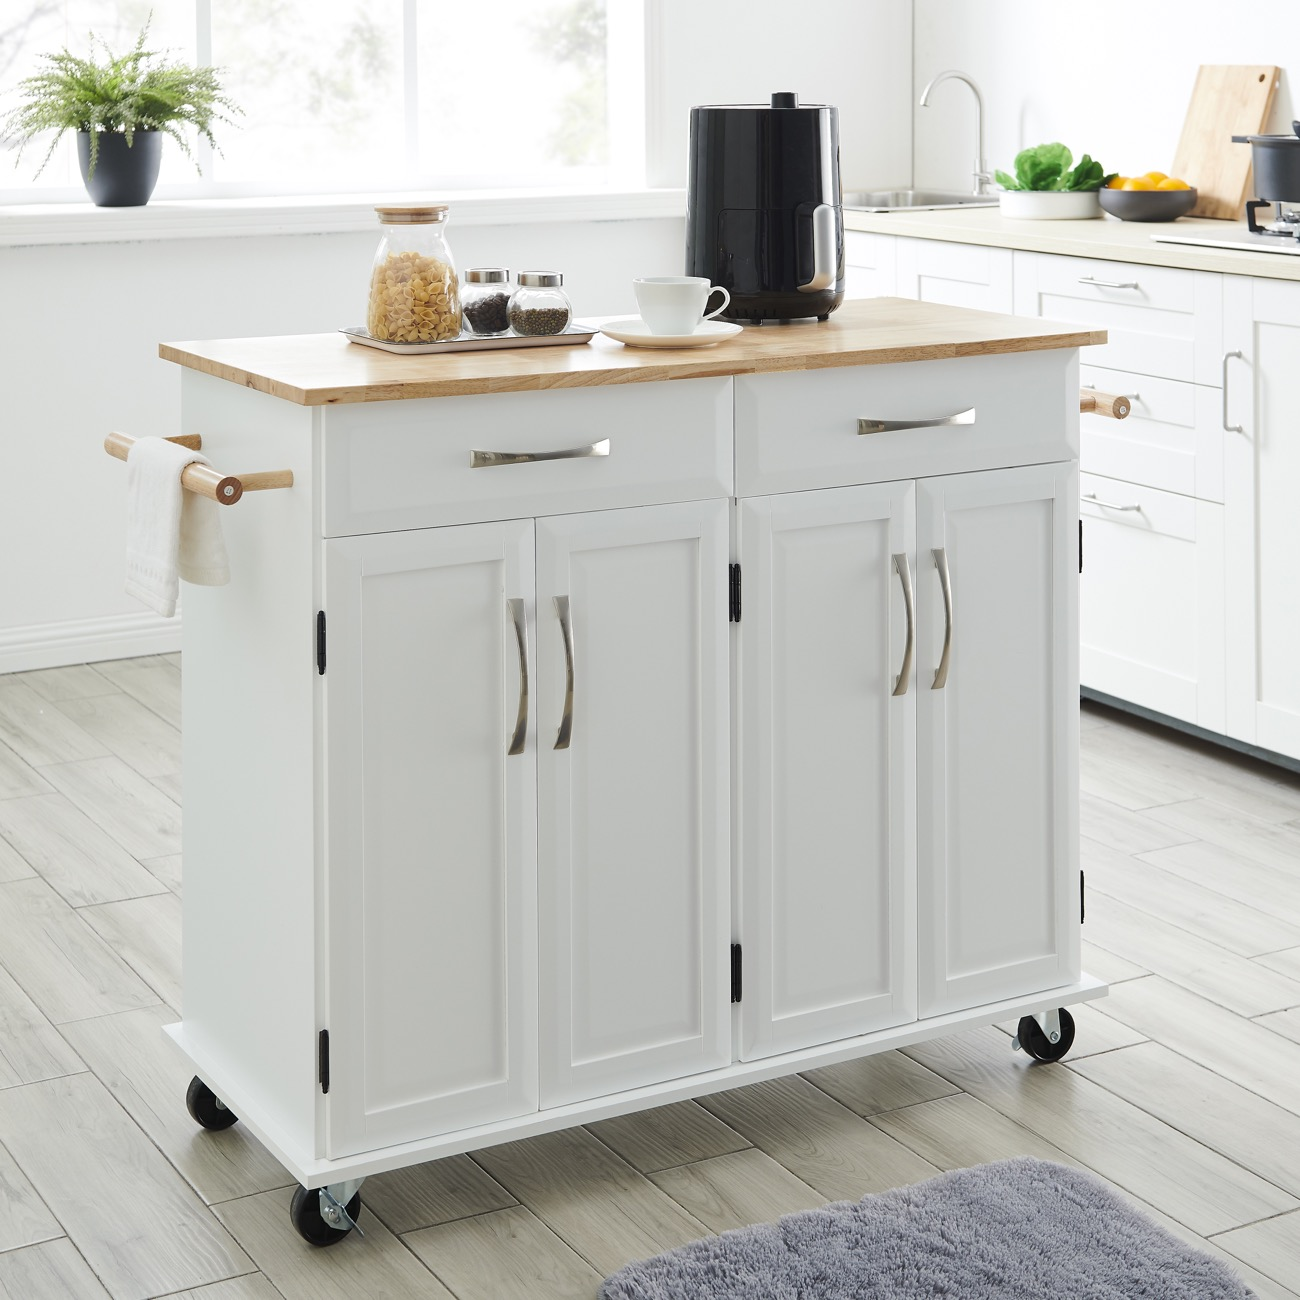 Details about Multi-Storage Portable Rolling Kitchen Island Cart with  Wheels in White, 36-Inch